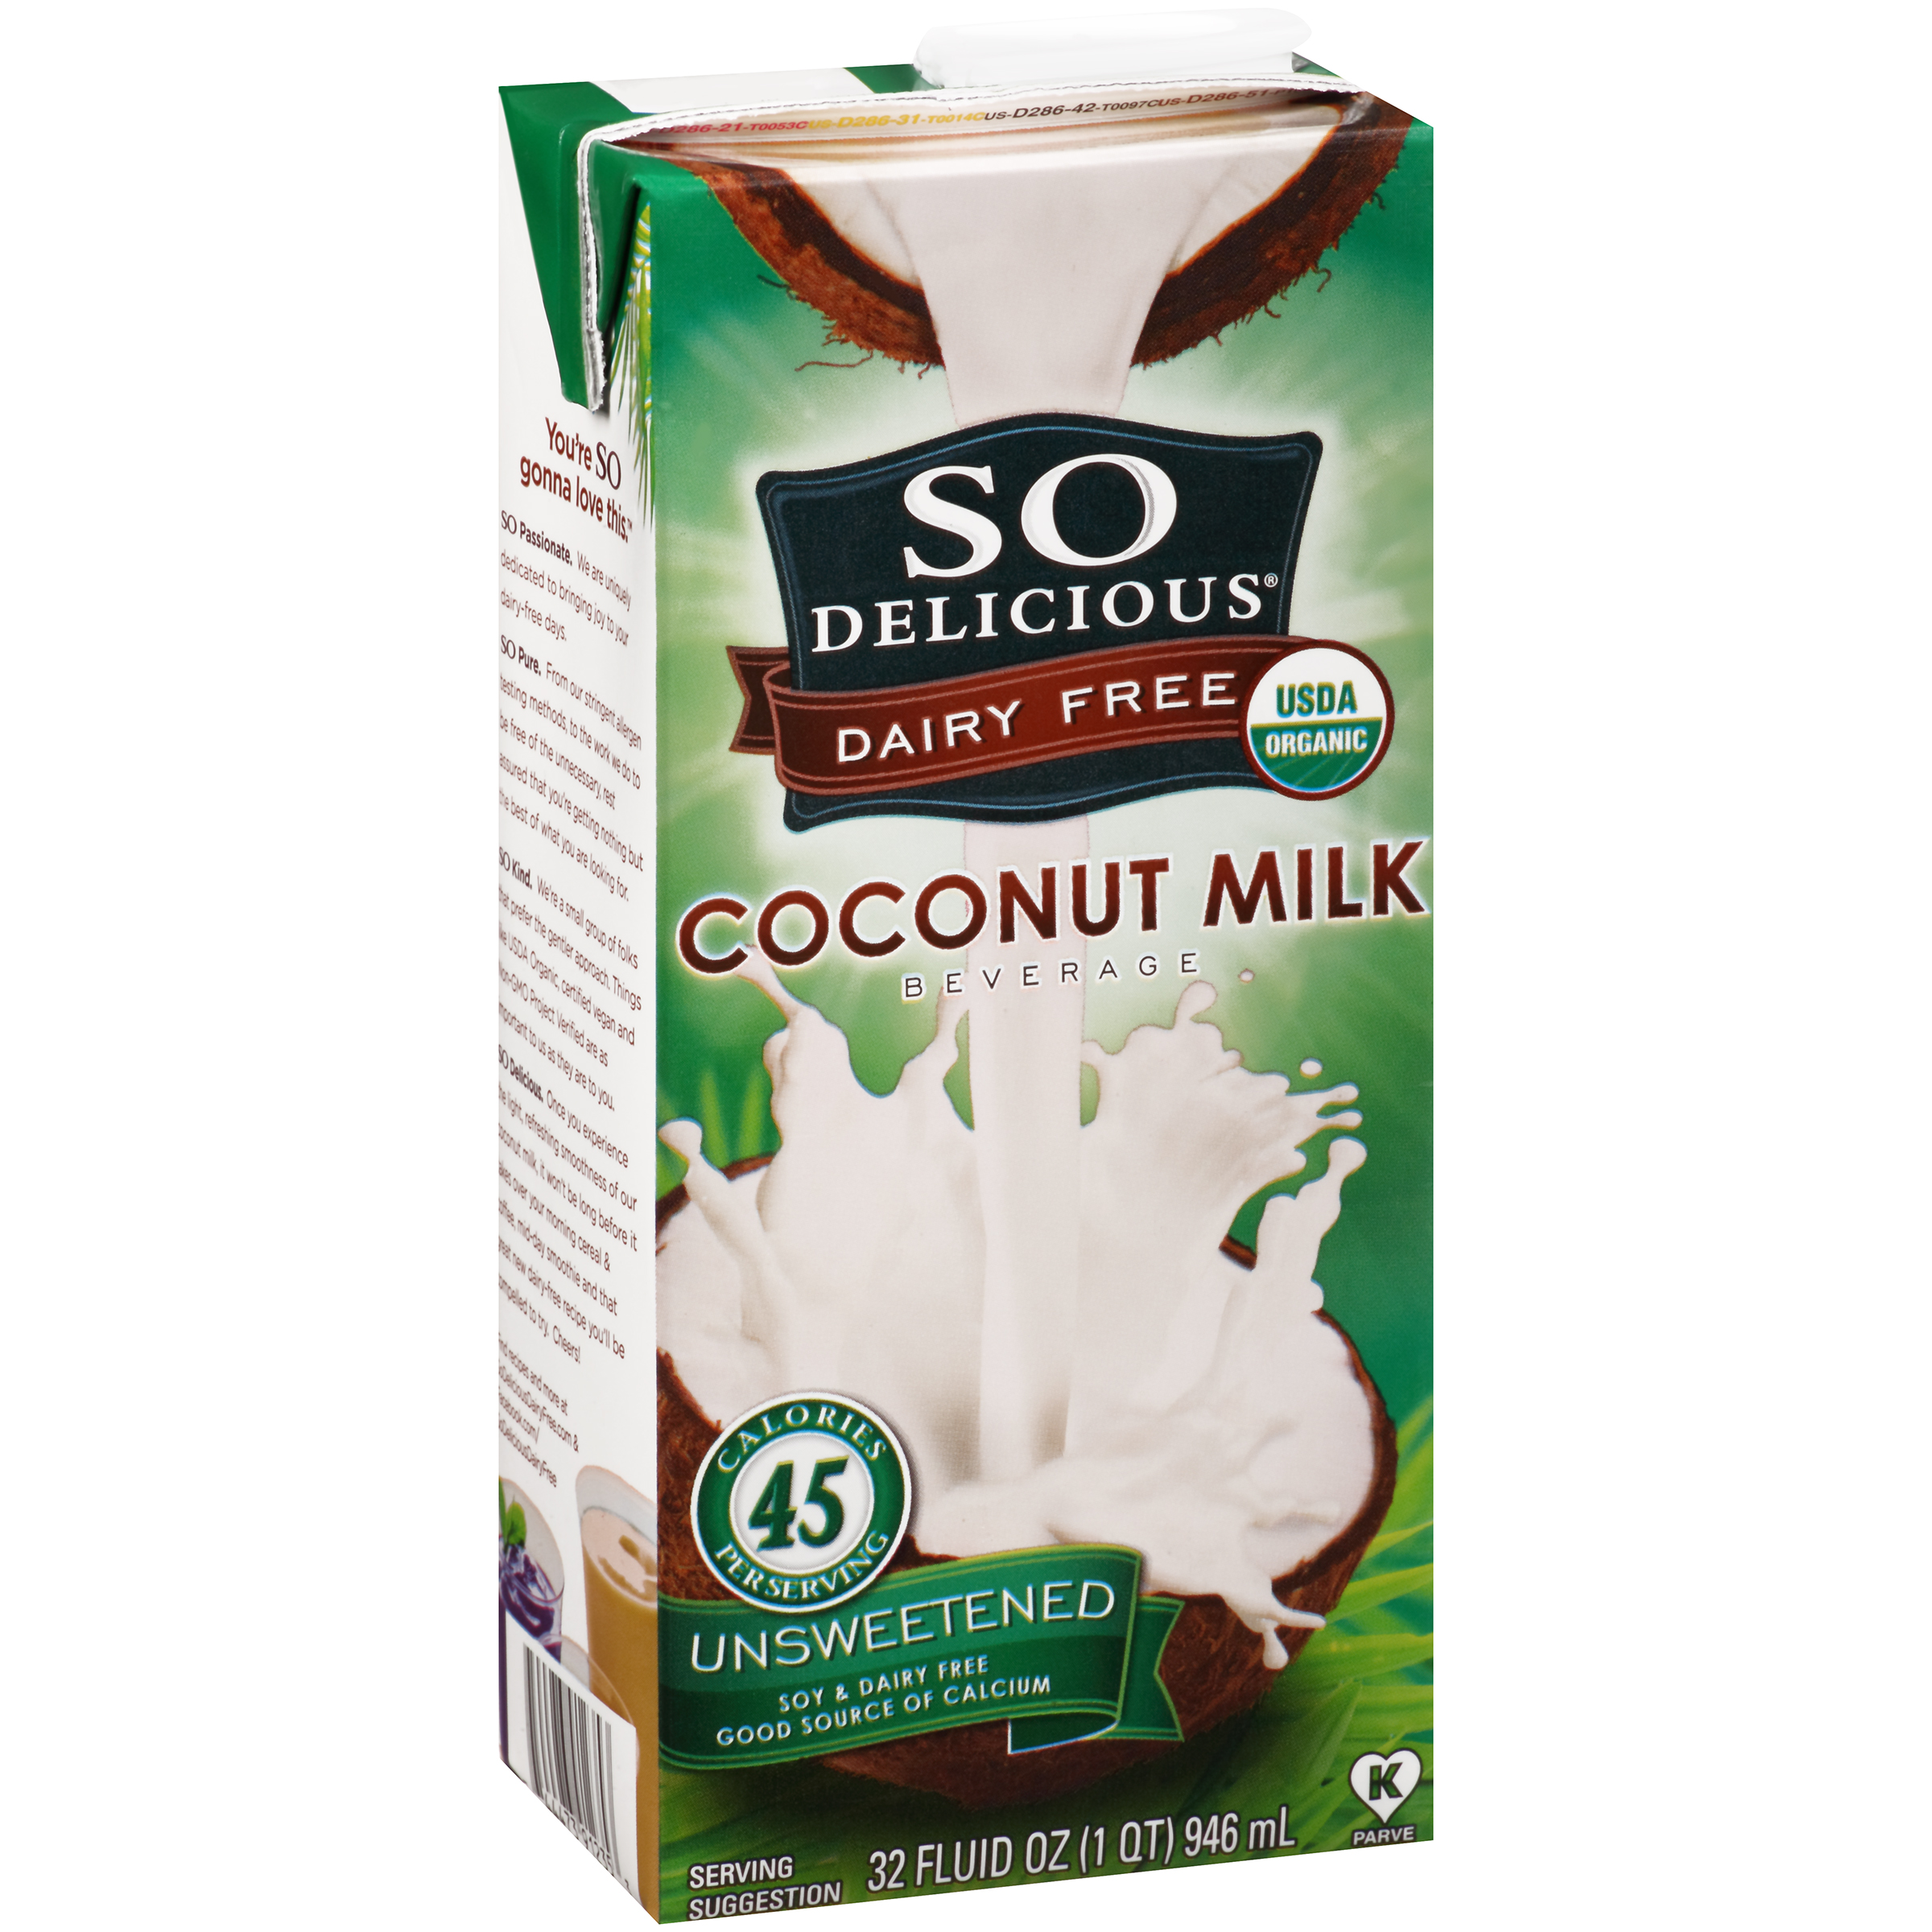 So Delicious�� Dairy Free Unsweetened Coconut Milk Beverage 32 fl. oz. Carton